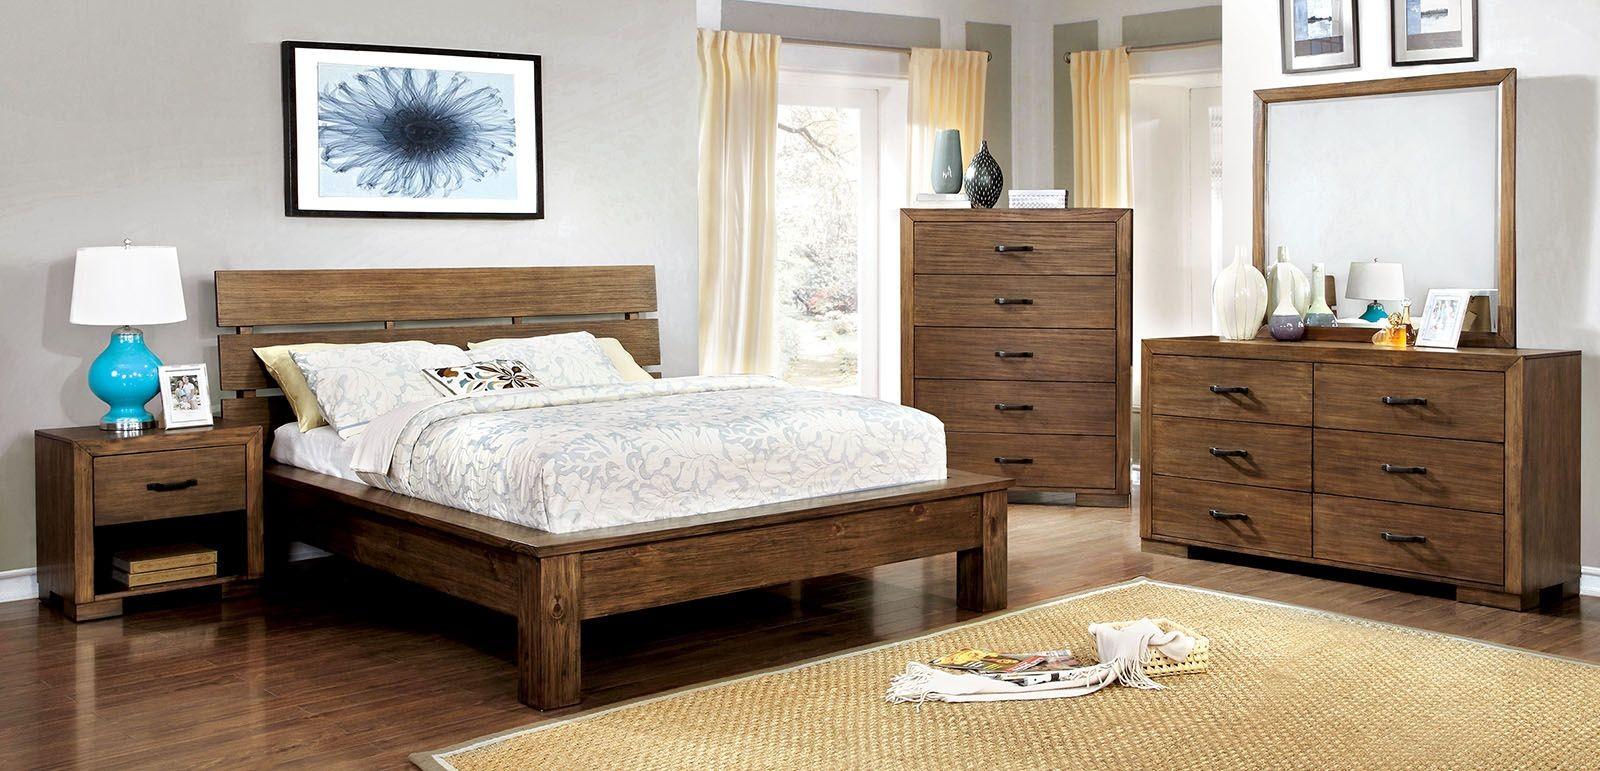 Roraima Reclaimed Pine Wood Bedroom Set Cm7251q